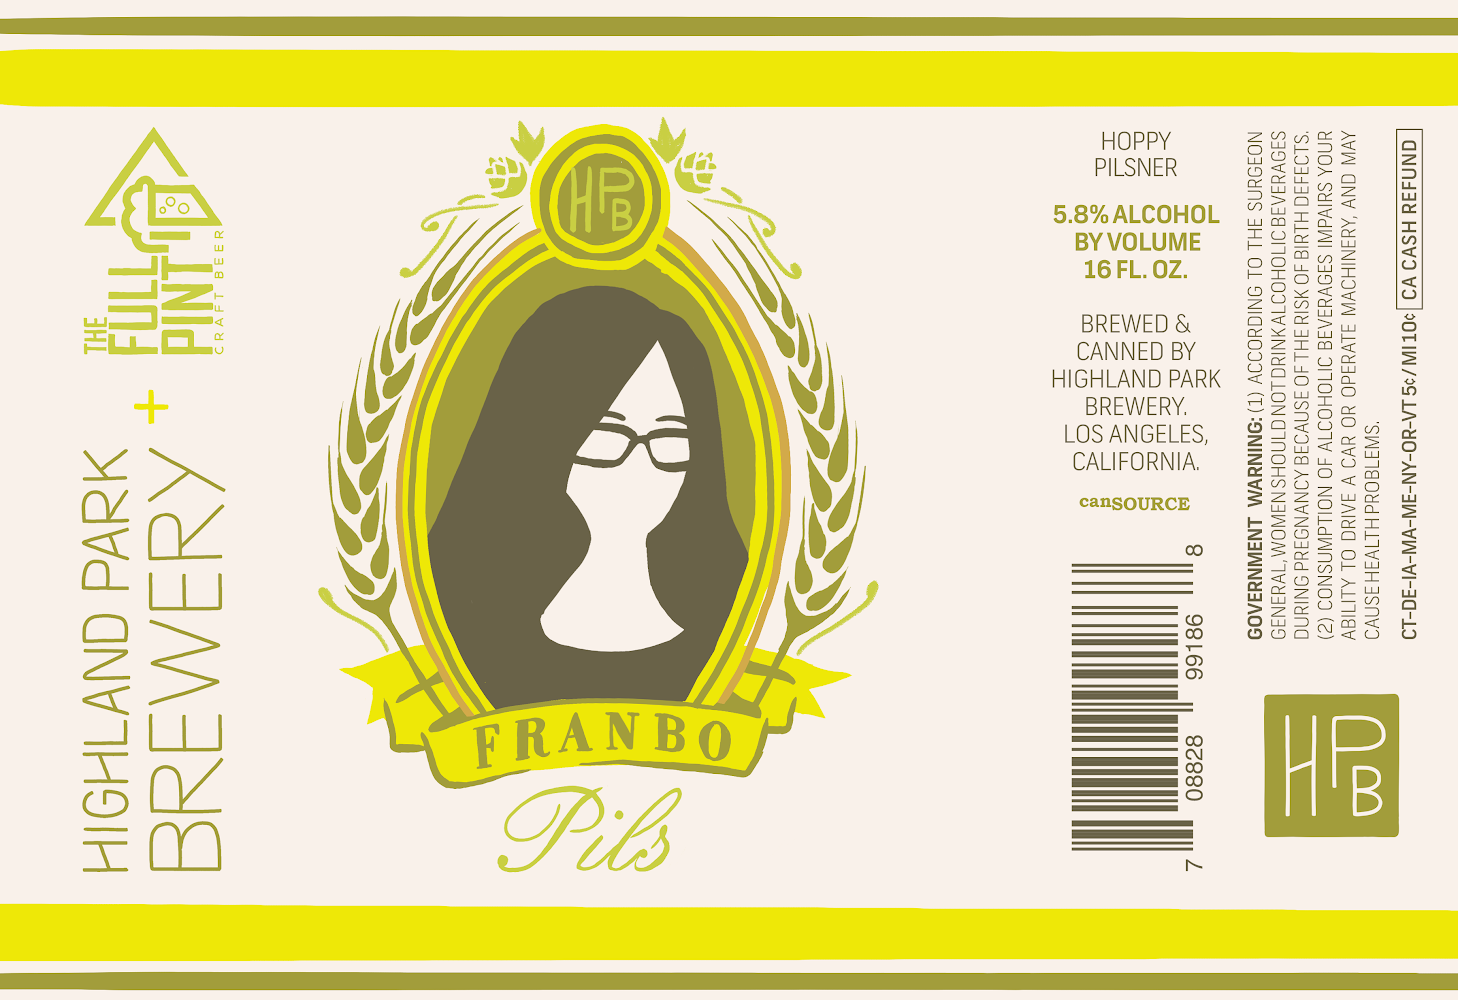 Franbo Pils Label